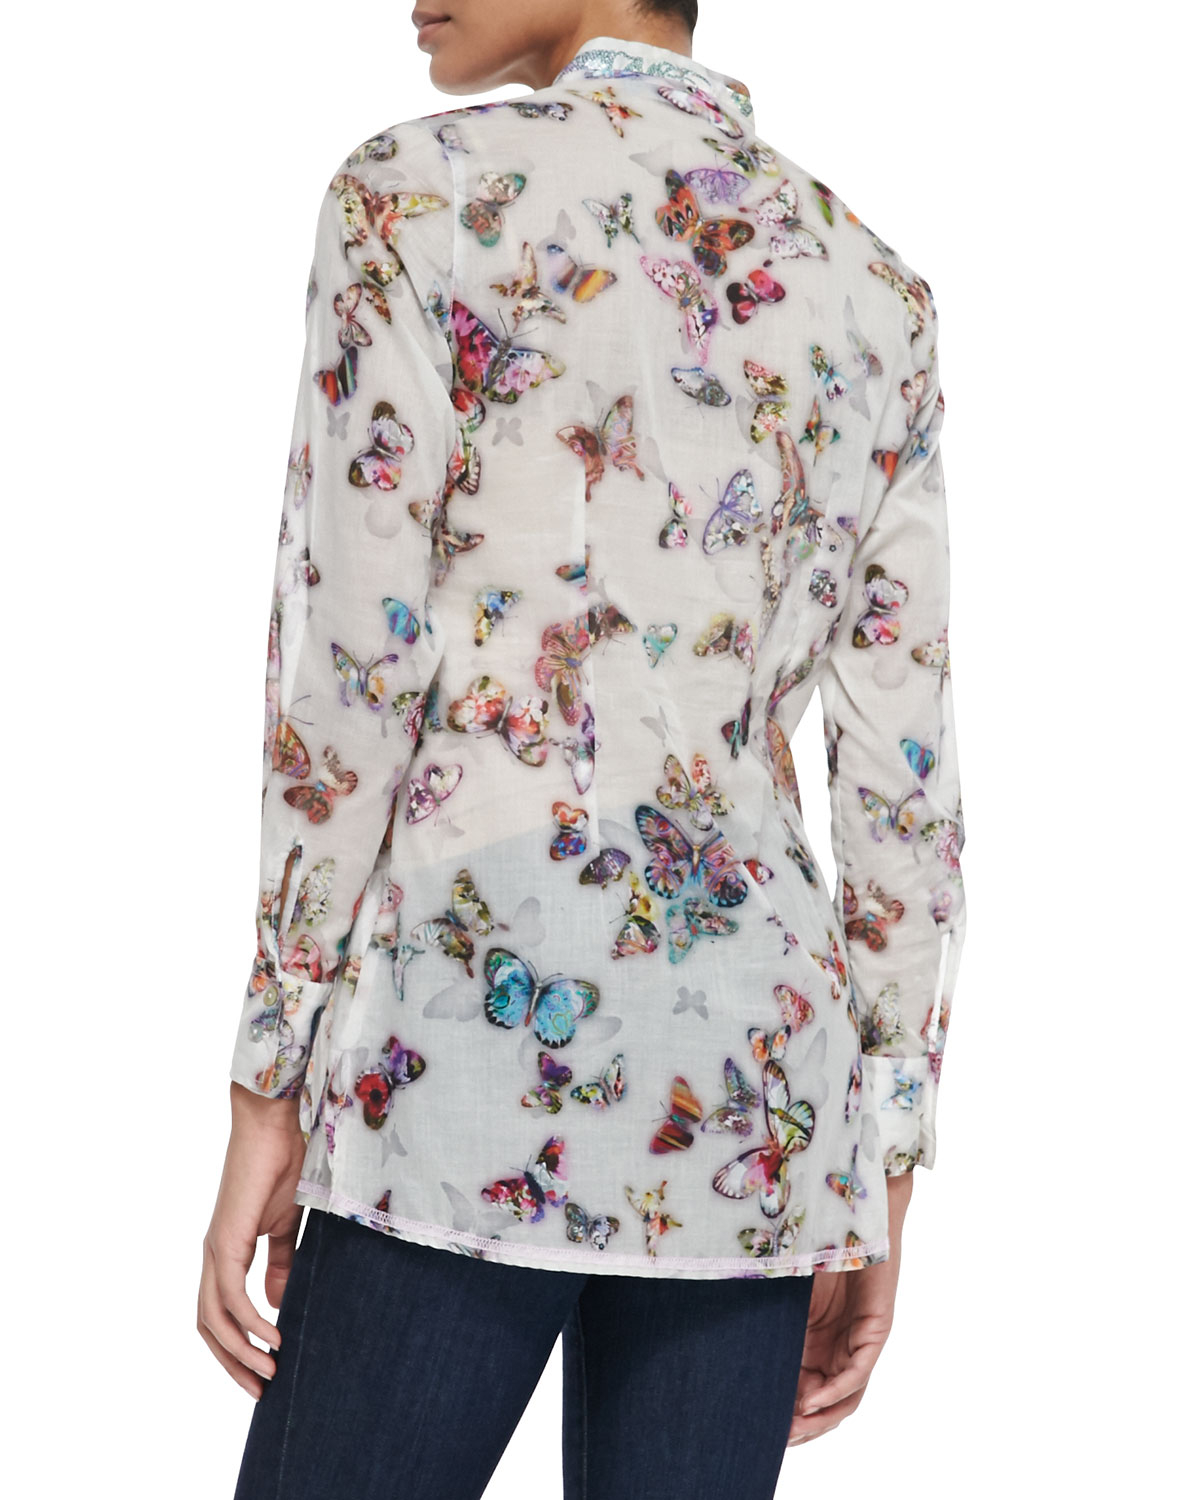 Georg Roth Los Angeles Long Sleeve Butterfly Print Blouse